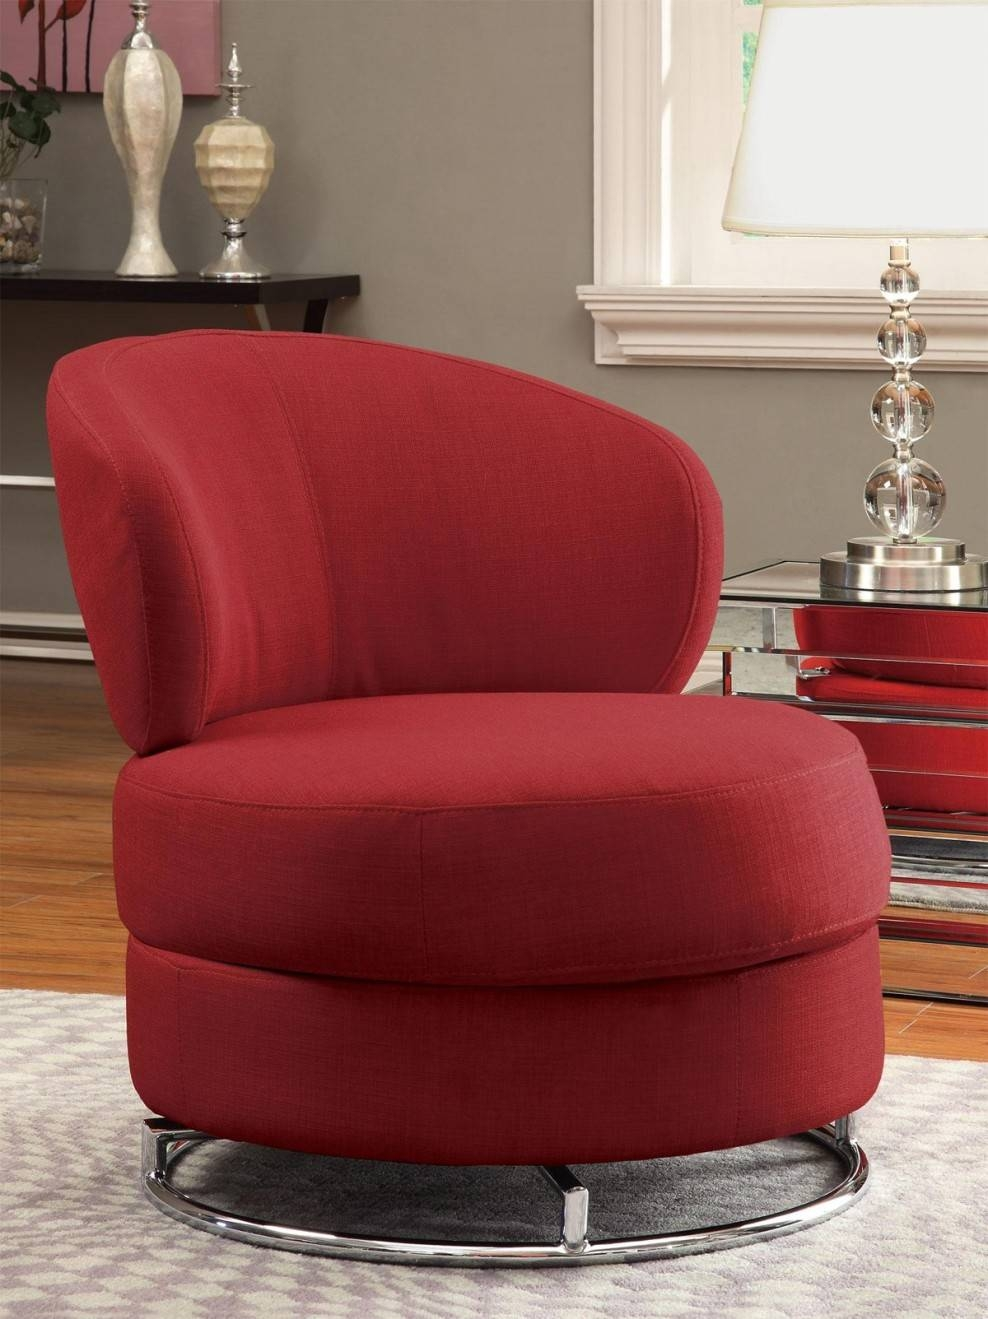 Round Living Room Chair Living Room Design And Living Room Ideas pertaining to Round Sofa Chair Living Room Furniture (Image 16 of 30)